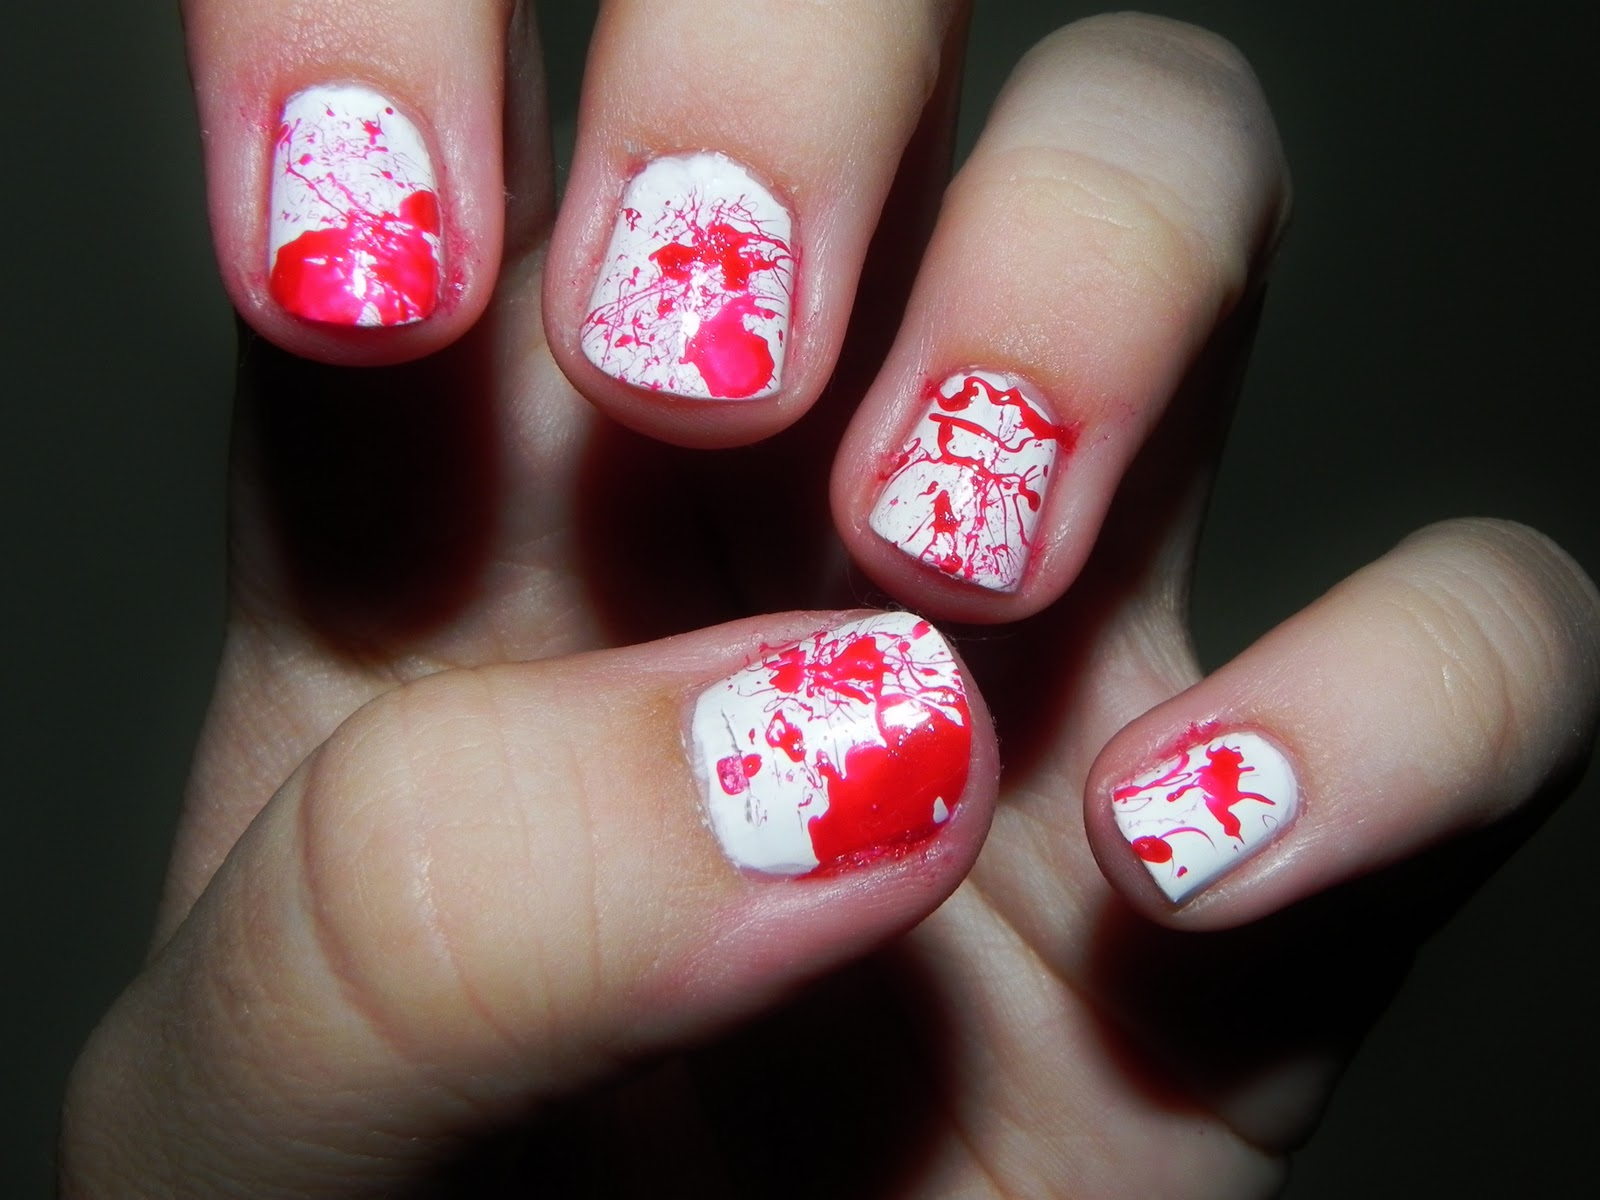 Bloody Nails - The Puzzle of Sandra's Life